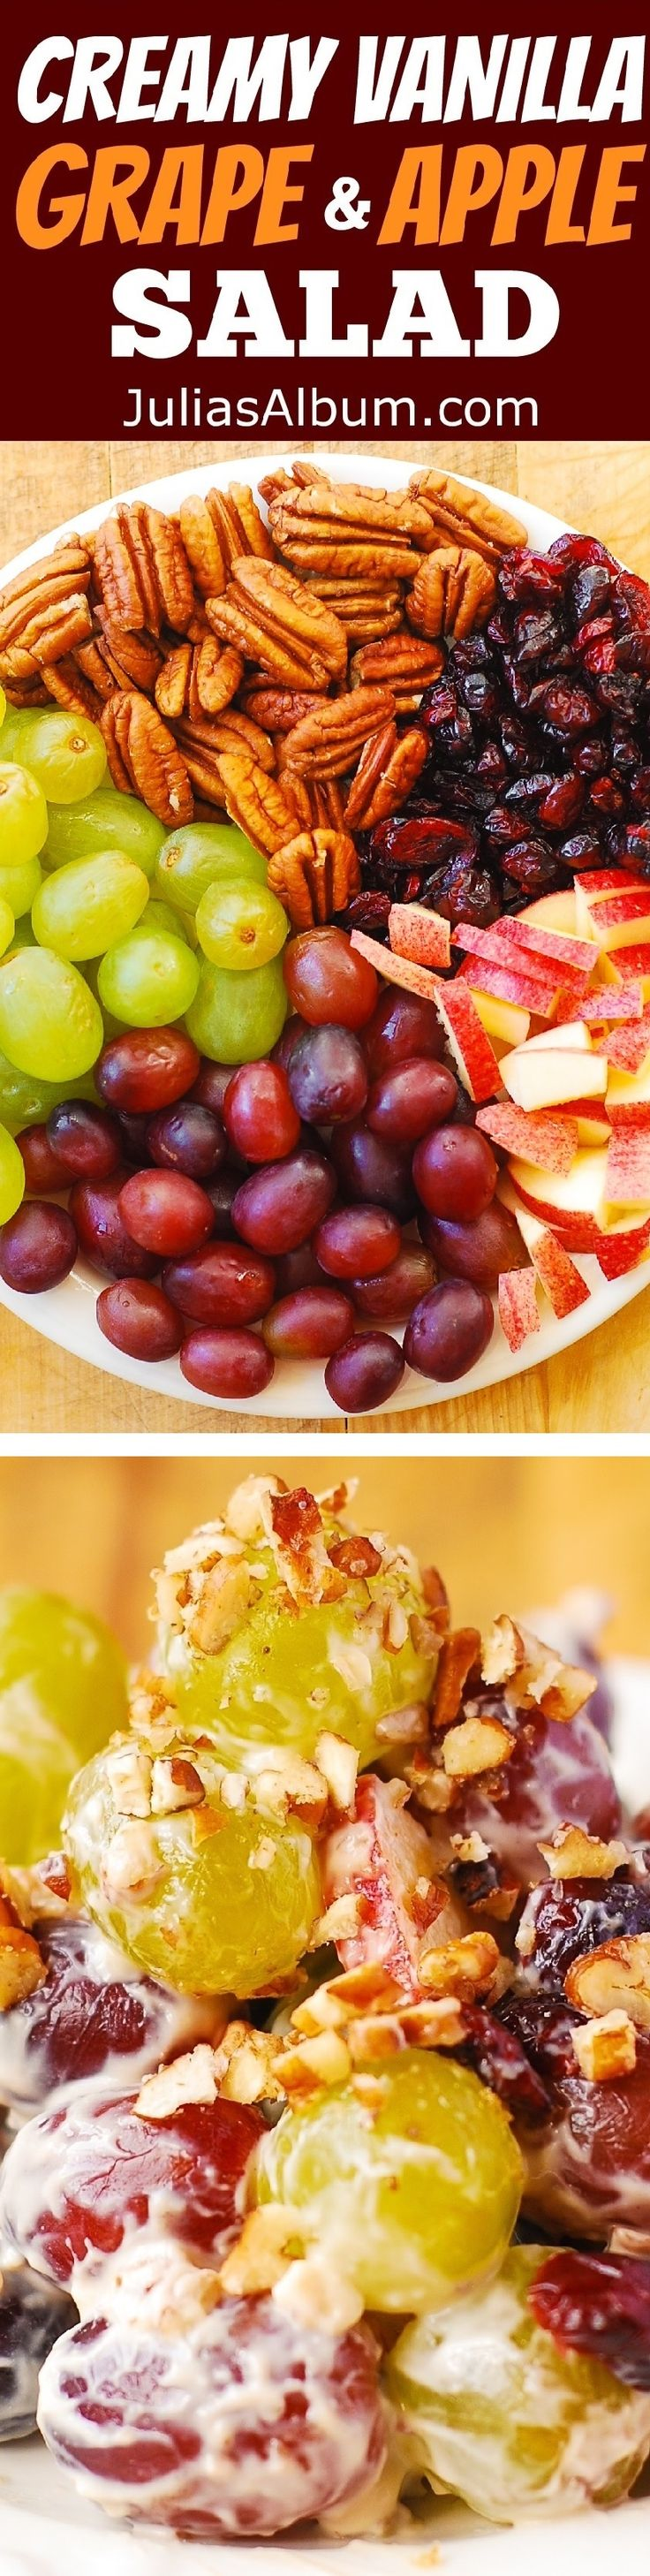 Creamy Vanilla Grape & Apple Salad with Cranberries and Pecans